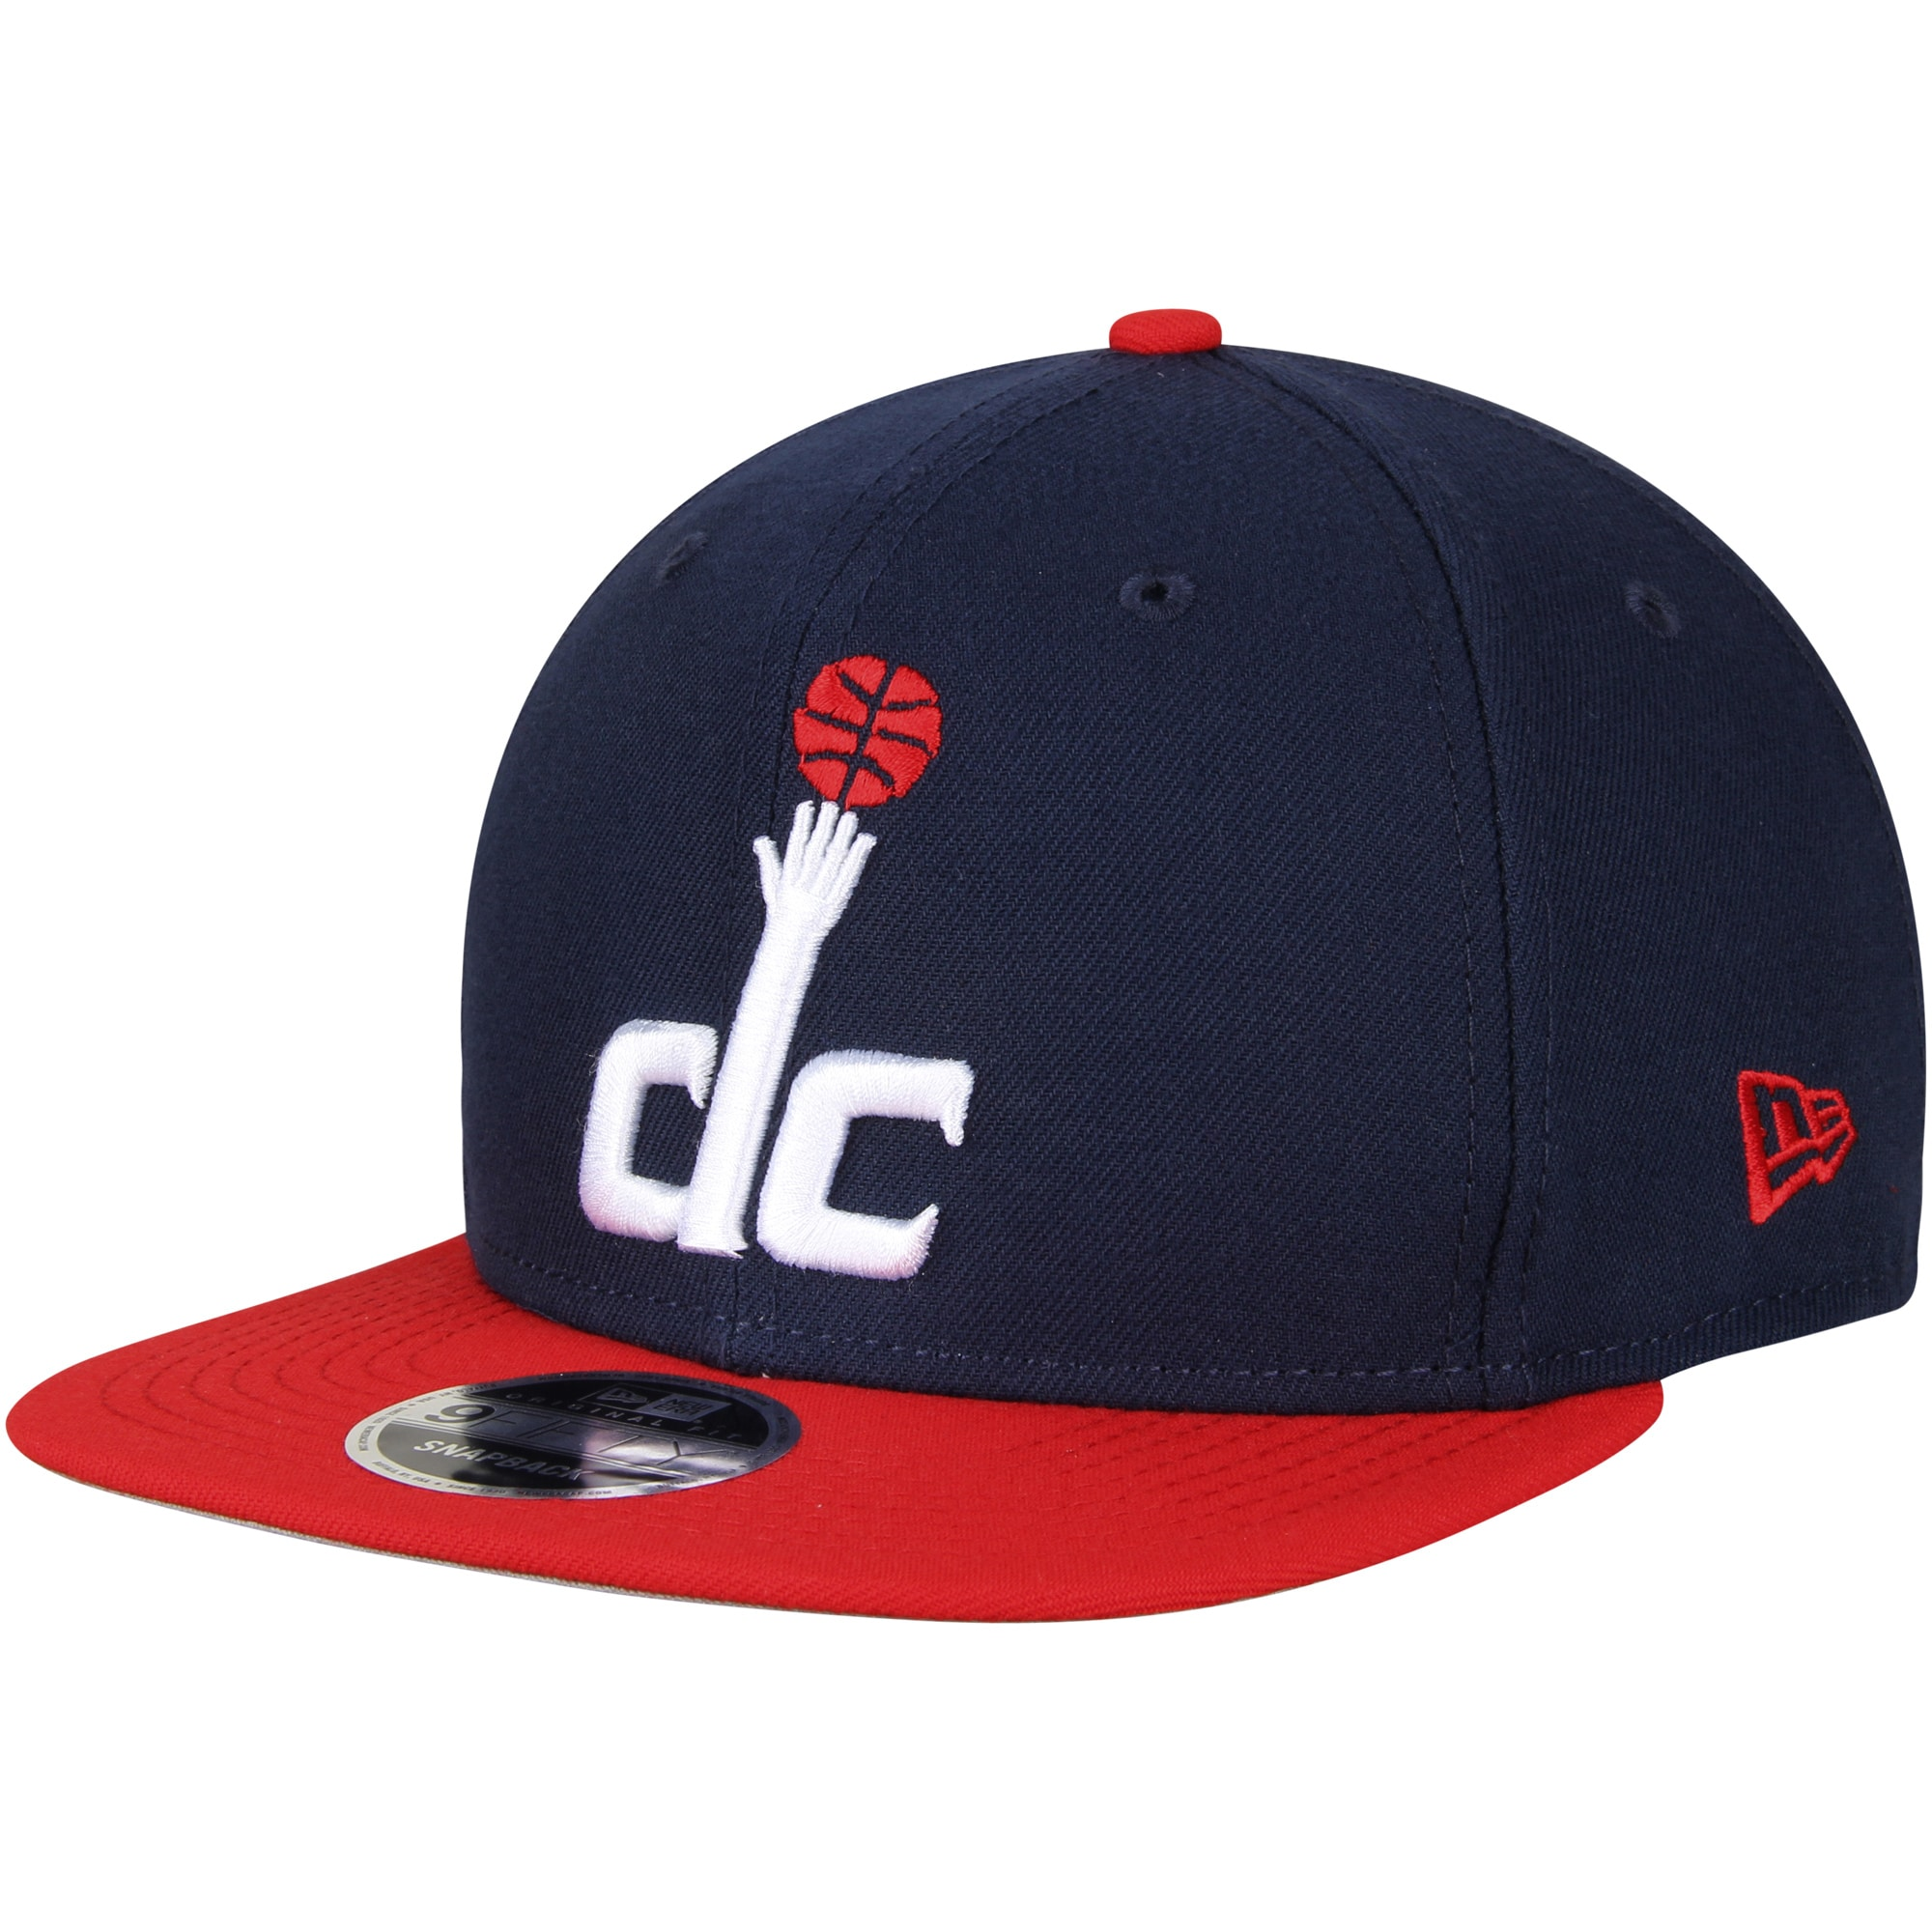 Washington Wizards New Era 2-Tone Original Fit 9FIFTY Adjustable Snapback Hat - Navy/Red